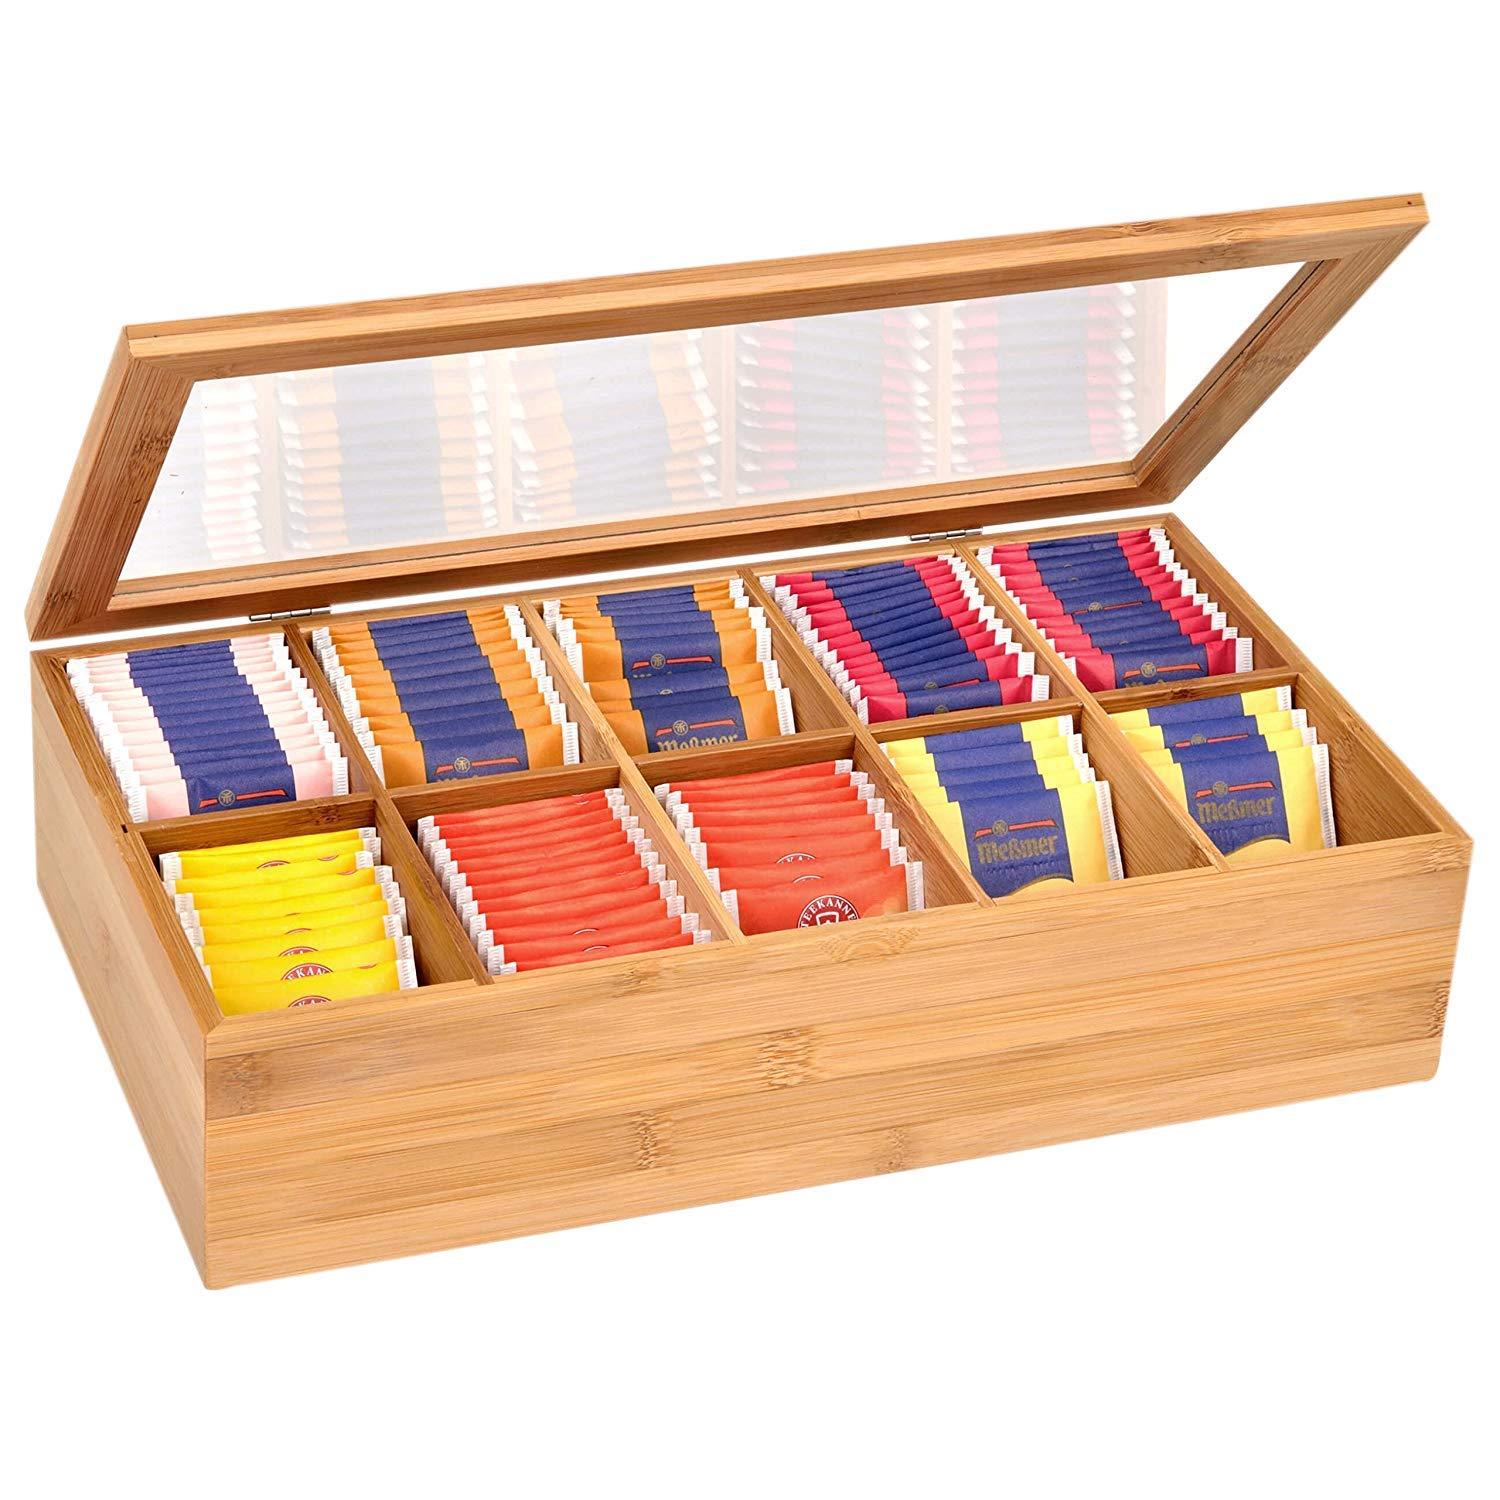 Bamboo Tea Storage Box Tea Bag Organizer or Kitchen Condiment Holder Perfect for Tea Lovers Countertop (14.5'' x 8'' x 4'') by Royal Brands